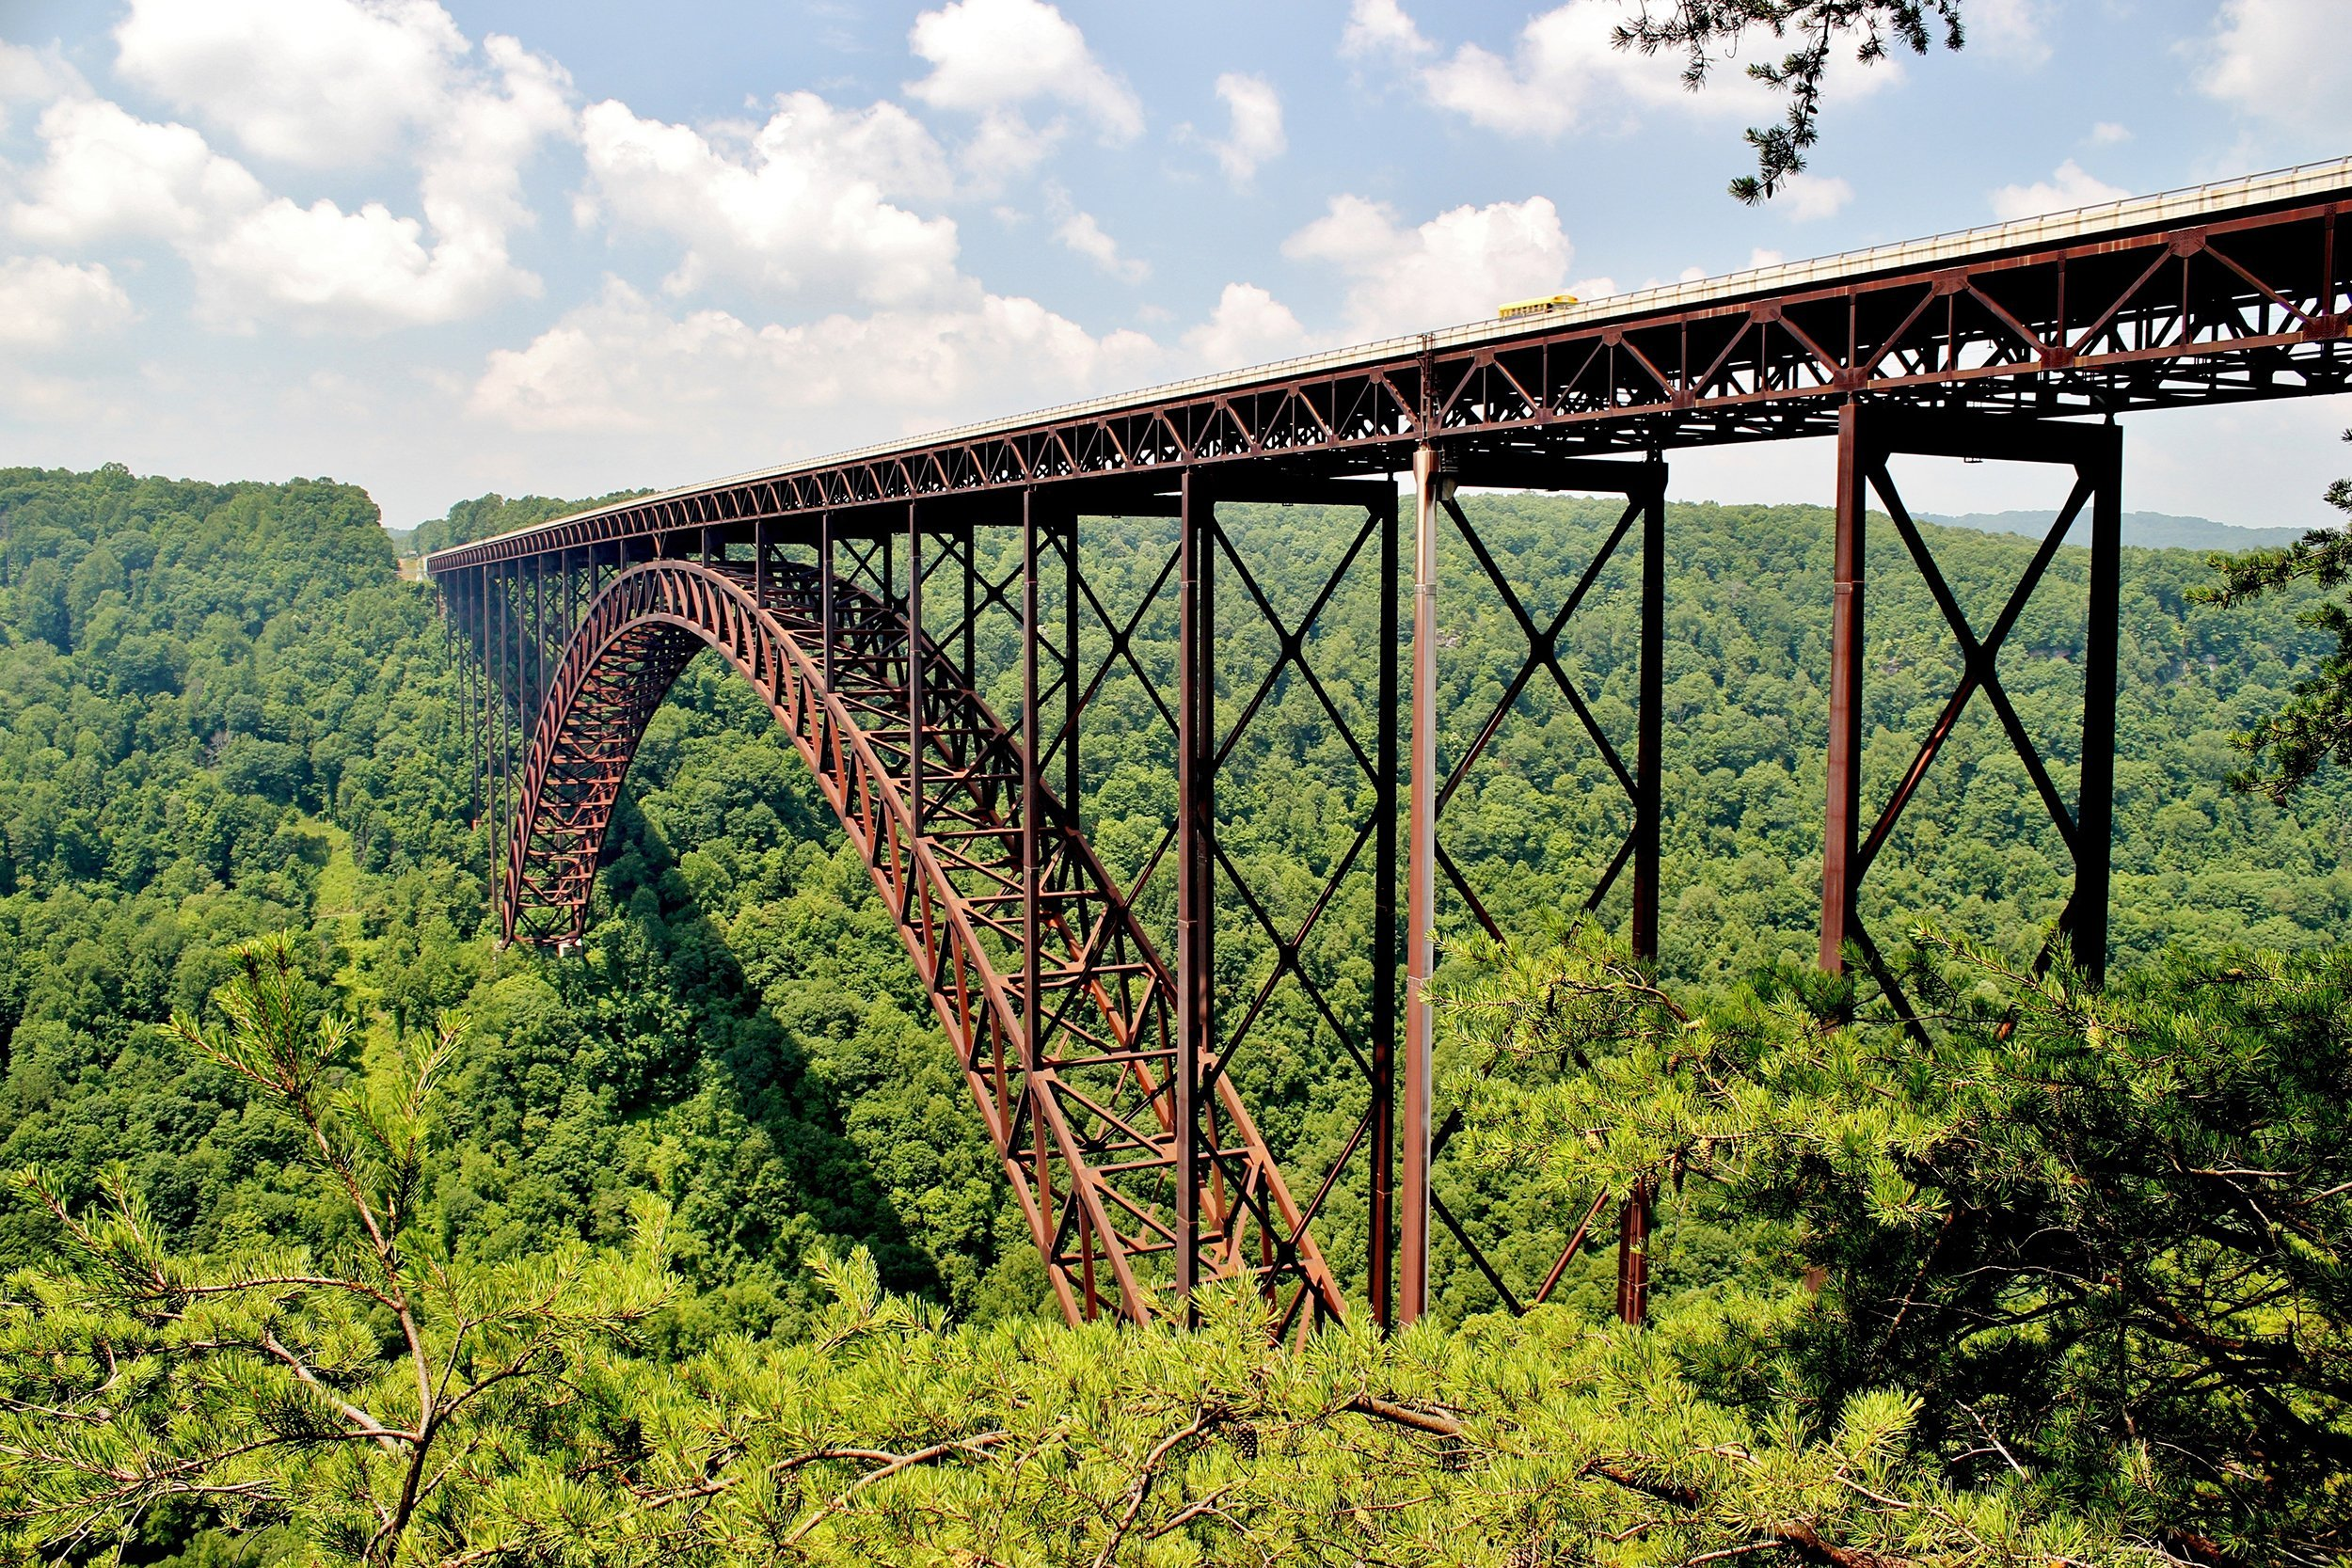 Slide 50 of 52:  Where: New River Gorge National River Distance: 2.7-mile loop Must see: The overlook at Diamond Point provides great views of the West Virginia vista. But don't be afraid to look down the 1,000-foot cliff — the beauty of the New River Gorge below beats out any view.